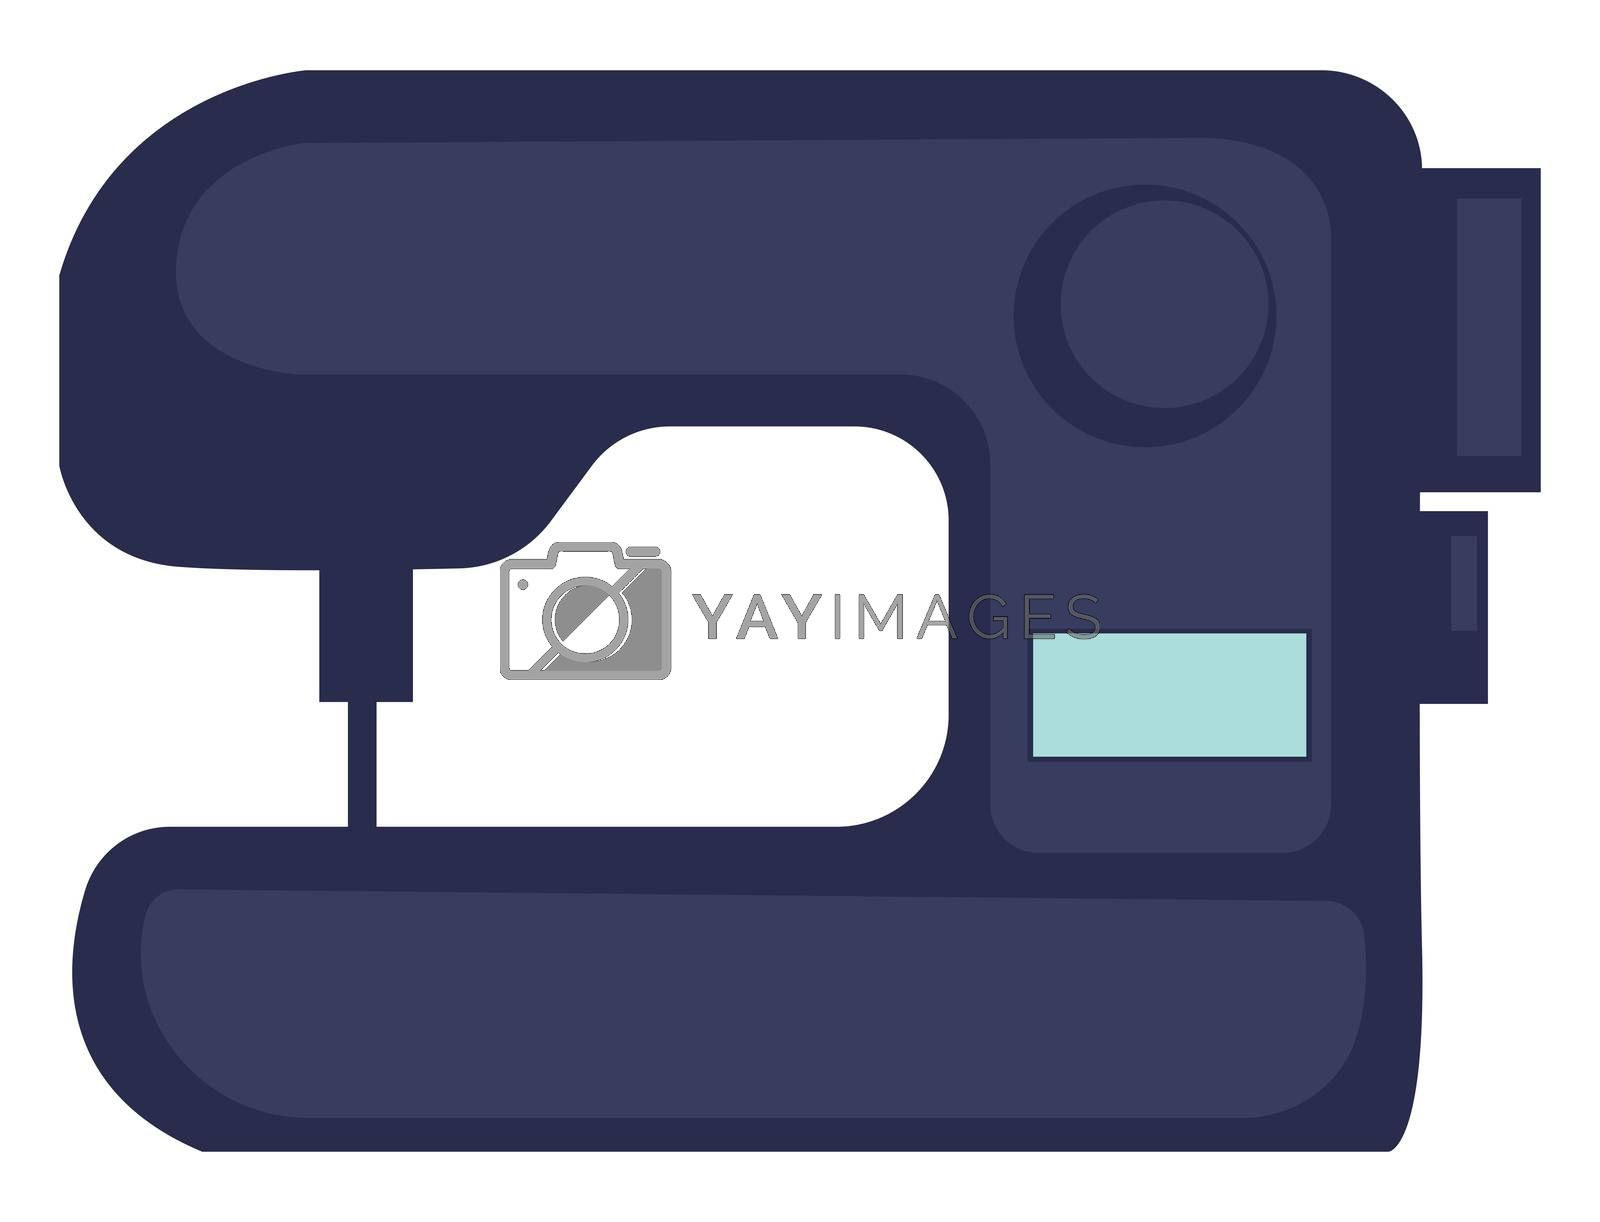 Sewing machine, illustration, vector on white background